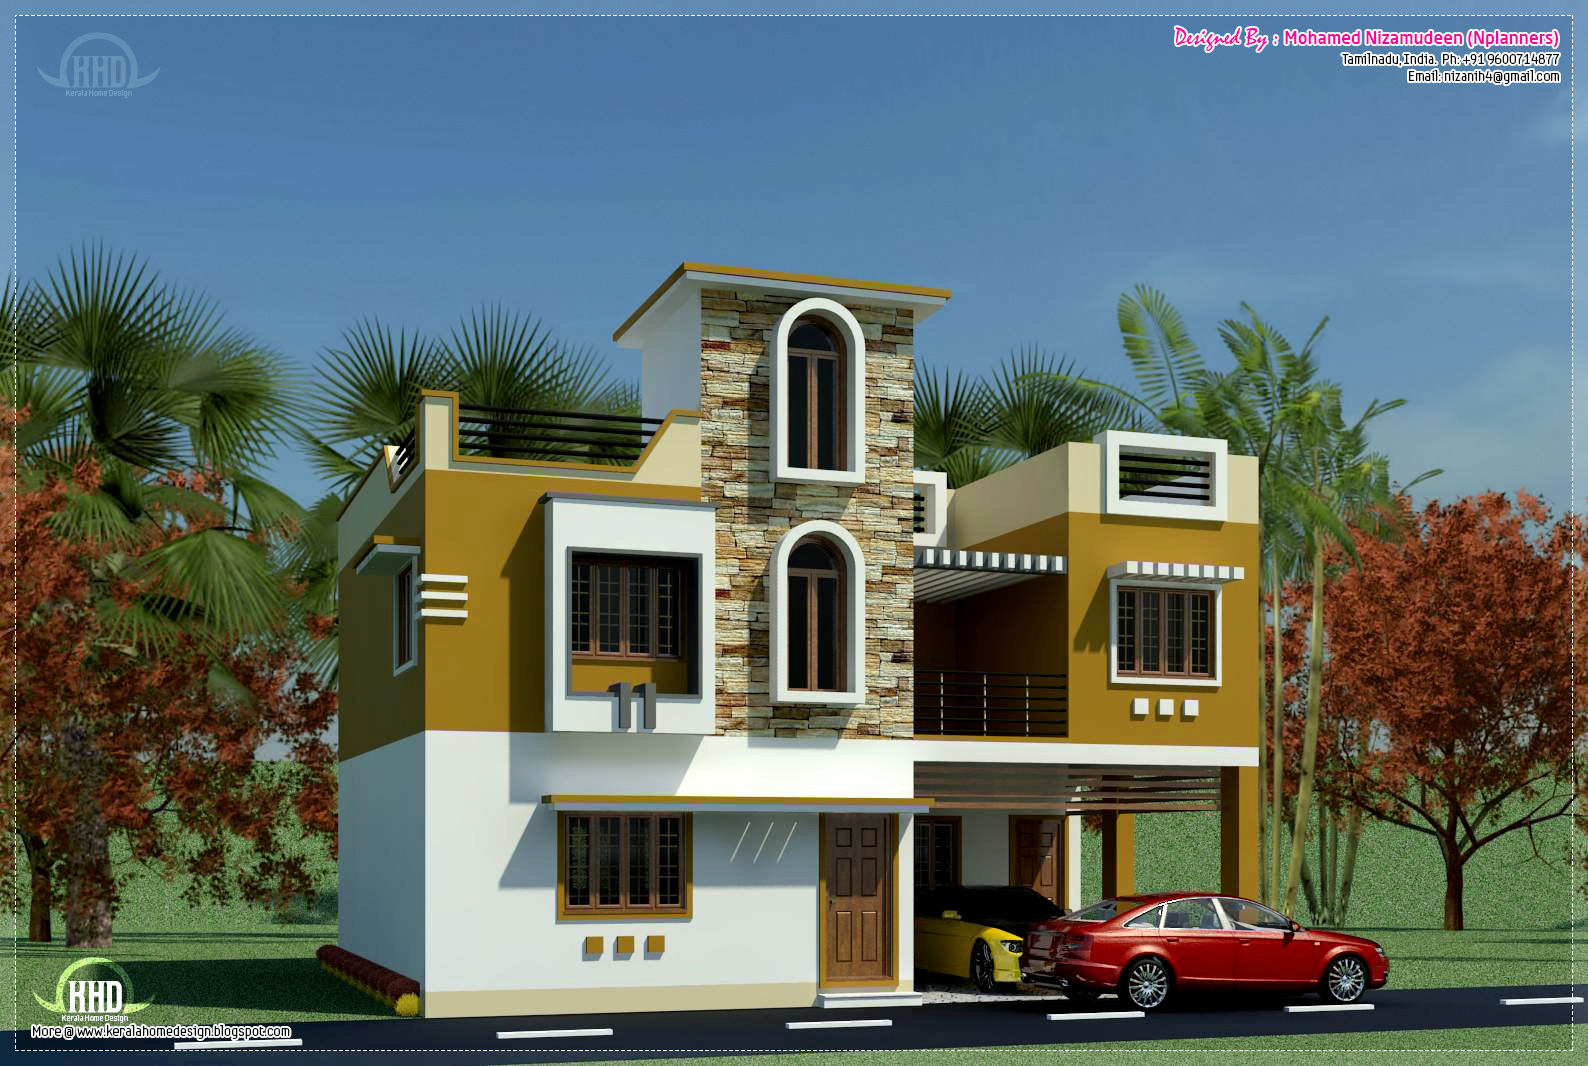 Siddu buzz online kerala home design for Indian house exterior design pictures